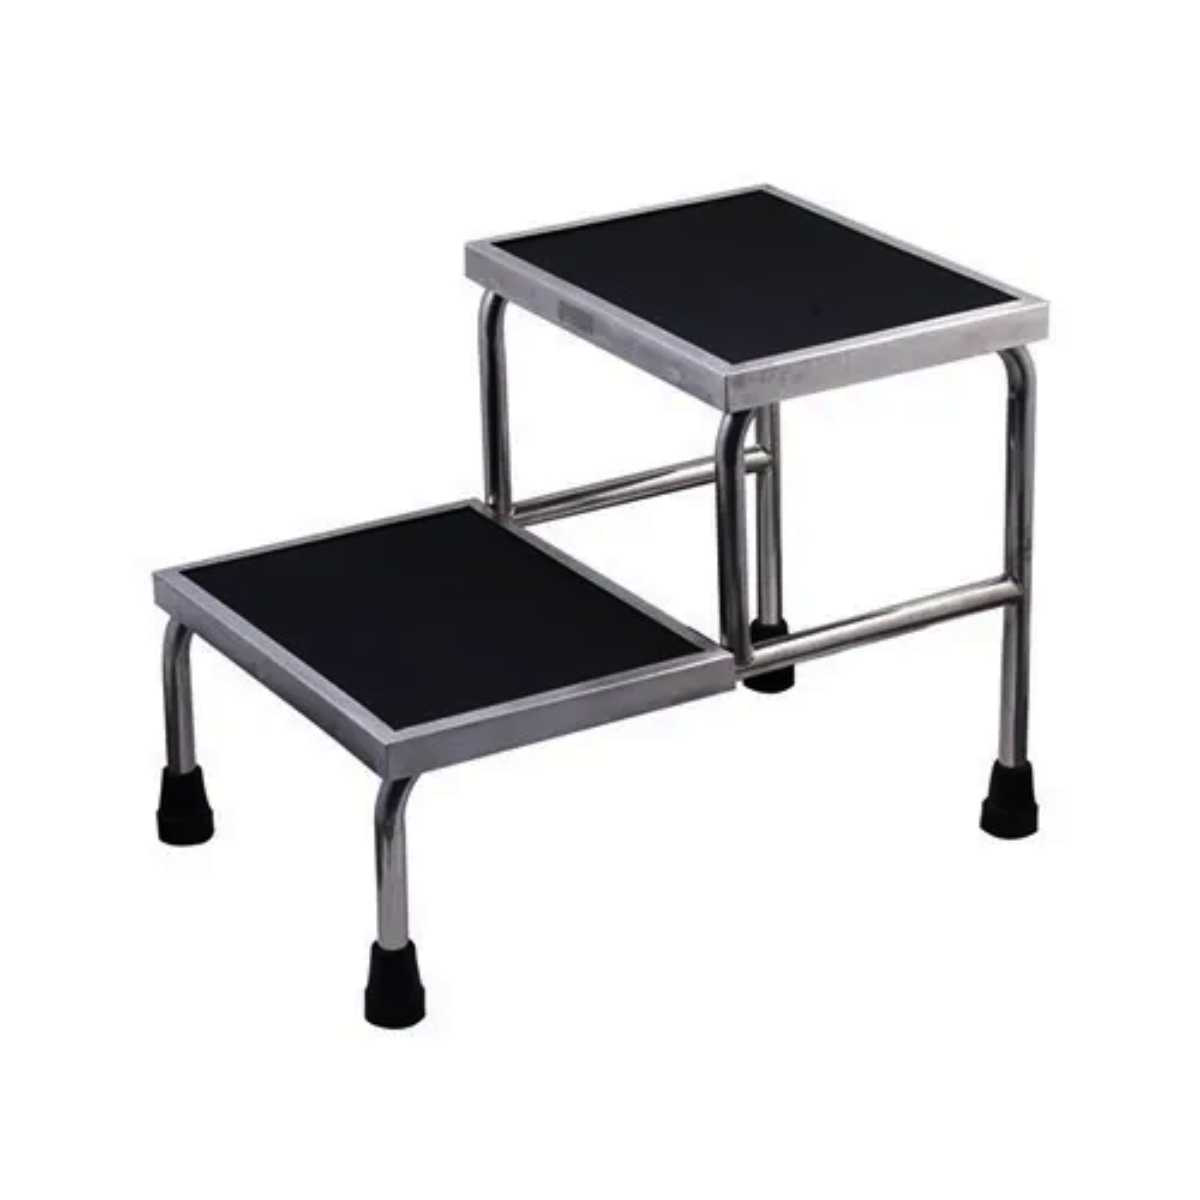 Stainless Steel Hospital Two Step Stool Halomedicals Systems Limited